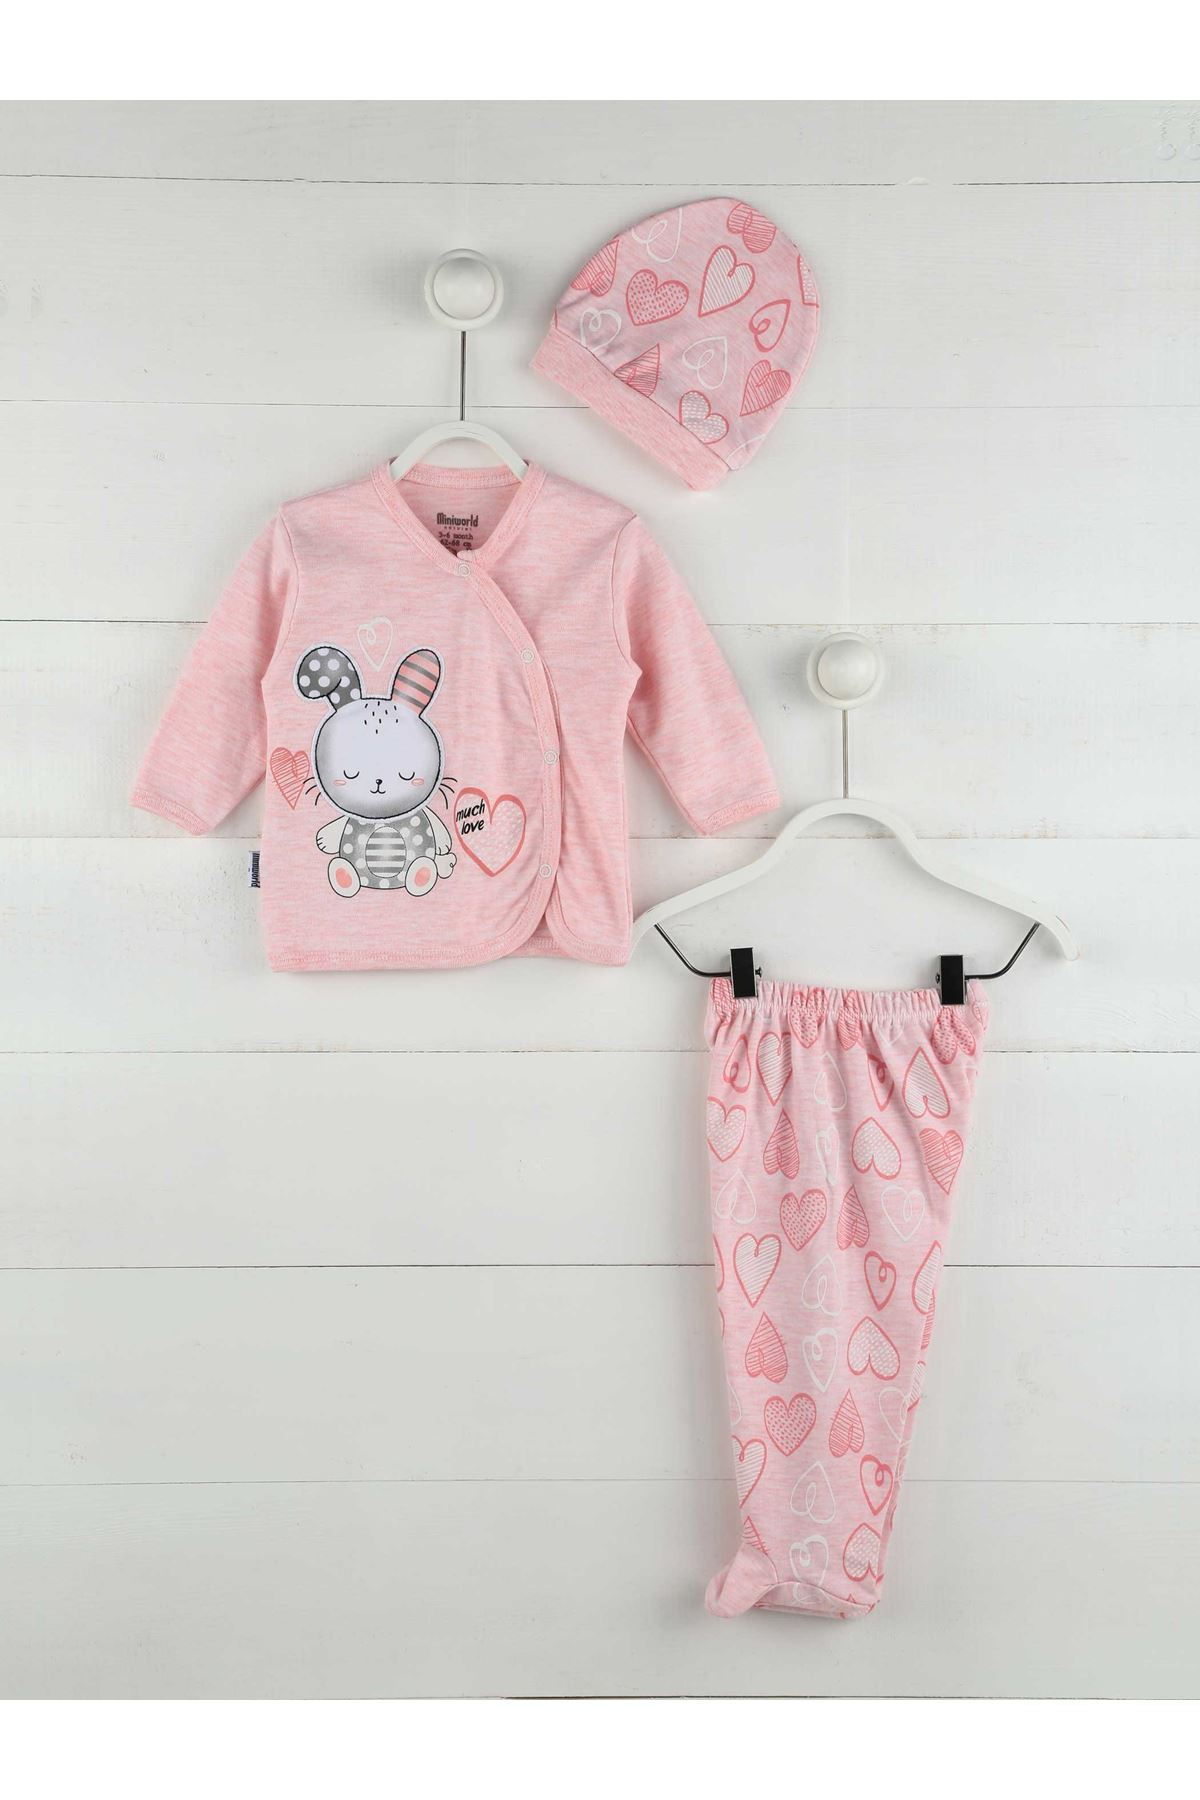 Infant Baby Girl Sets 2020 Spring Fall Green Tops T-Shirts + CartoonPants + Hat New Born Baby Girl Clothing Outfits 3 Pieces